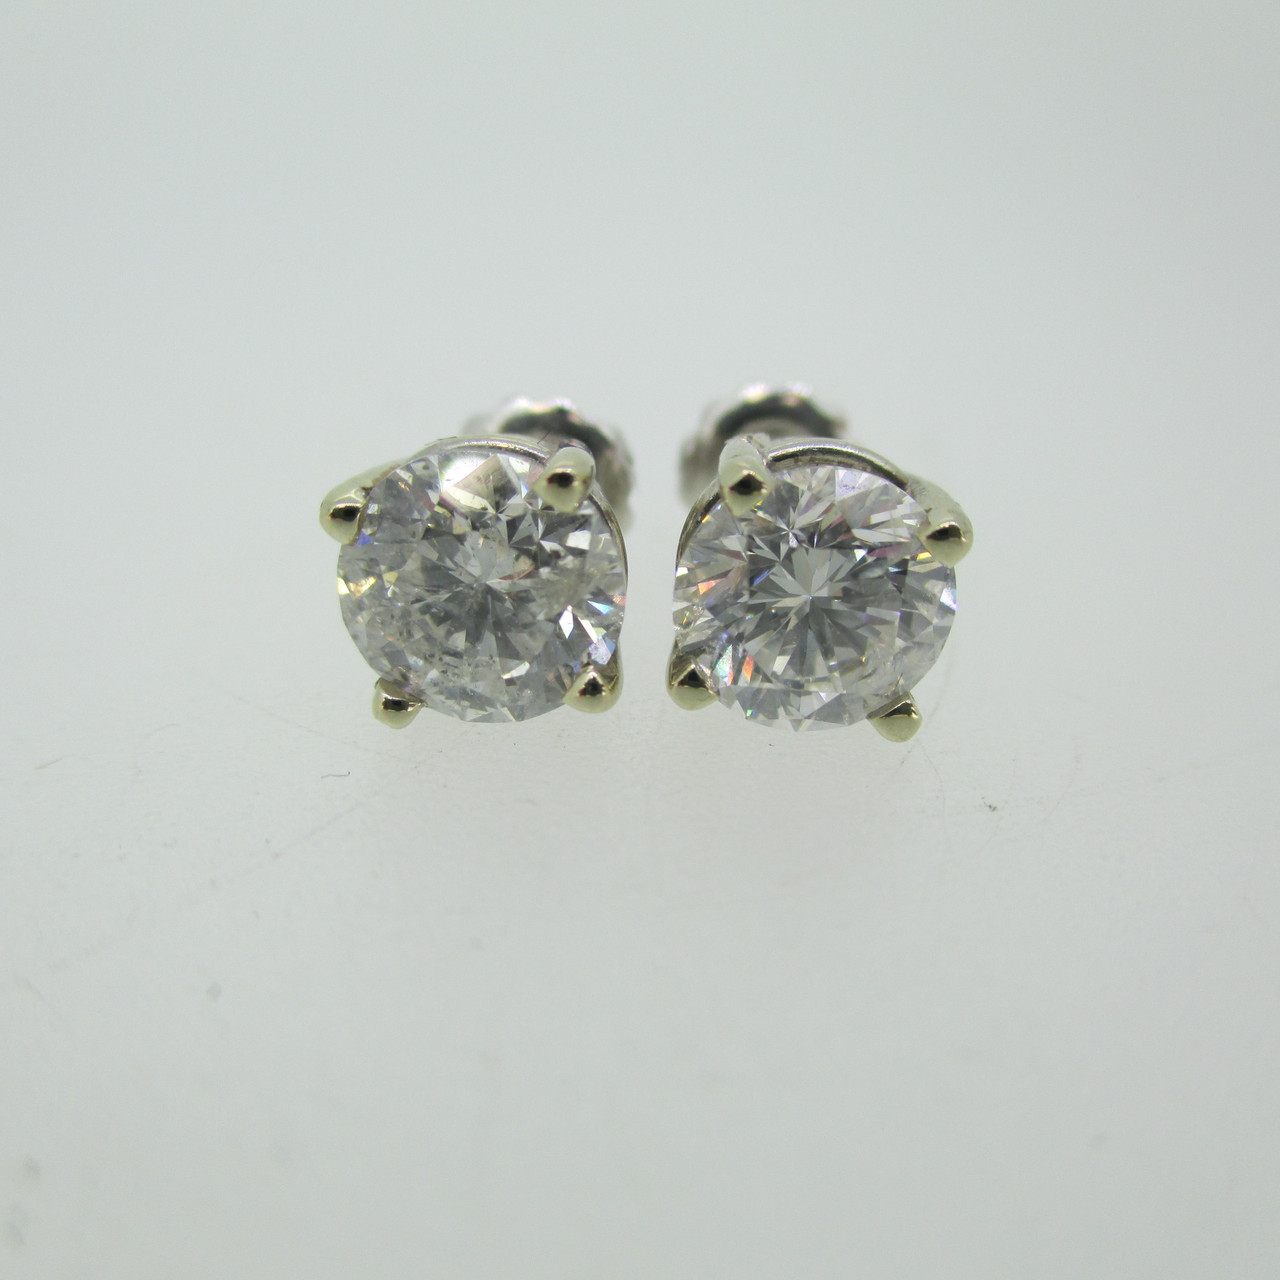 c6e8a6553d3 14k White Gold Two GIA Certified 2.48ct TW Round Brilliant Cut Diamond Stud  Earrings Screw Backs